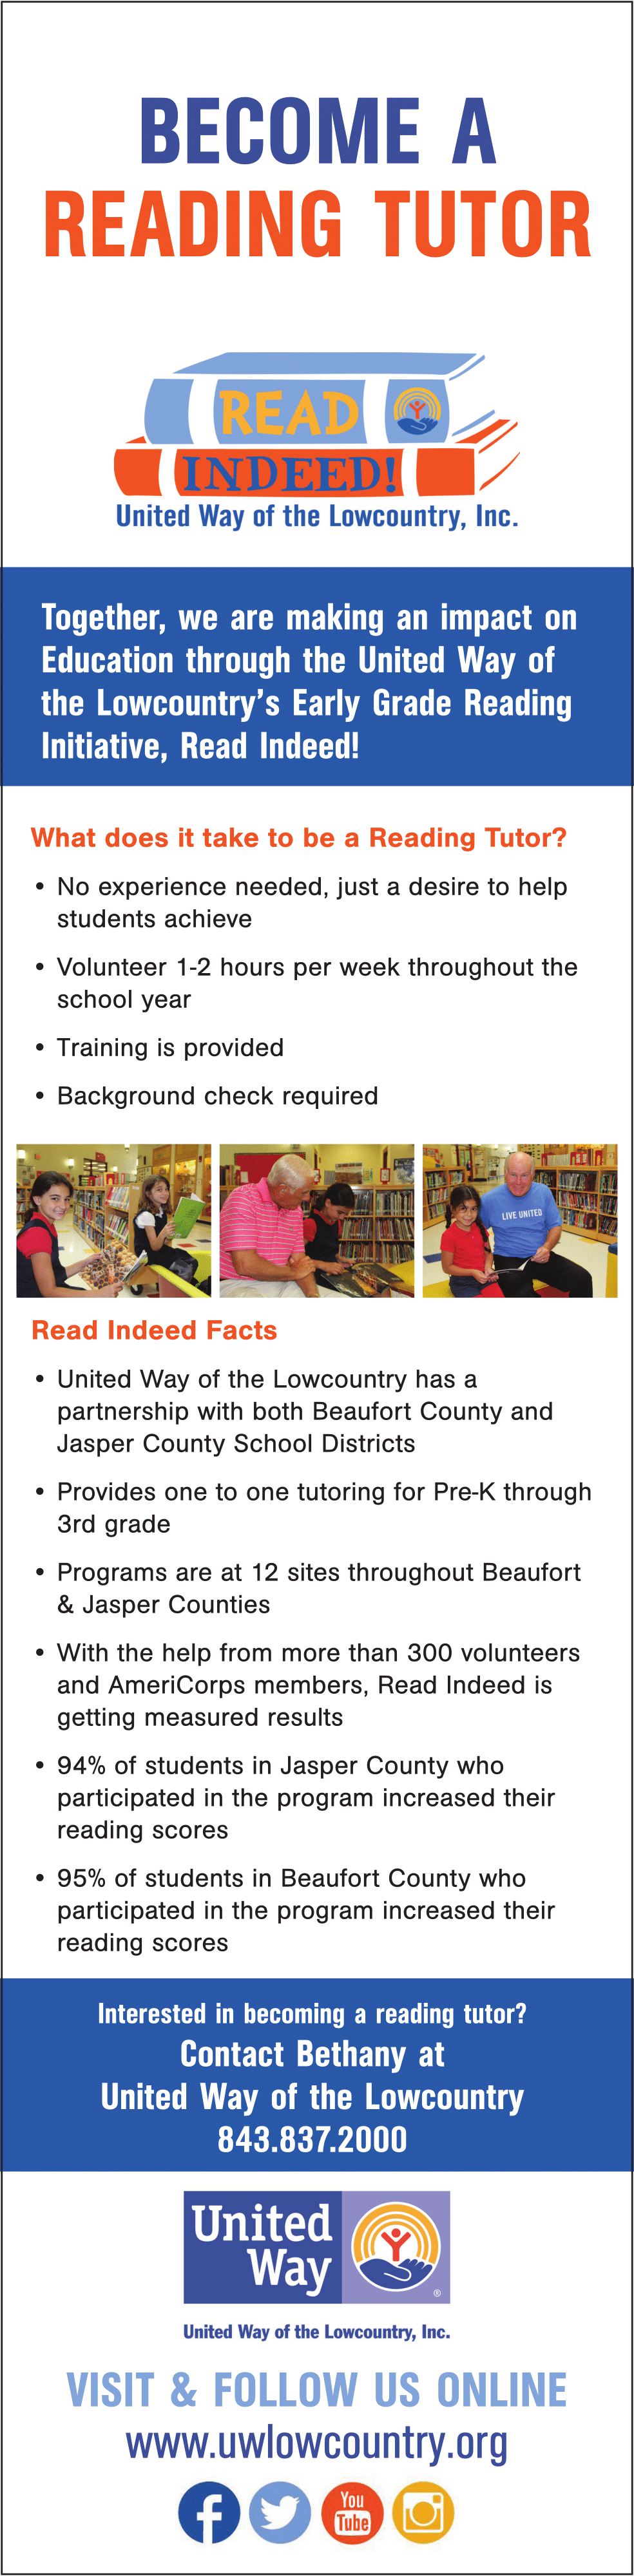 United Way of the Lowcountry | Become a Reading Tutor